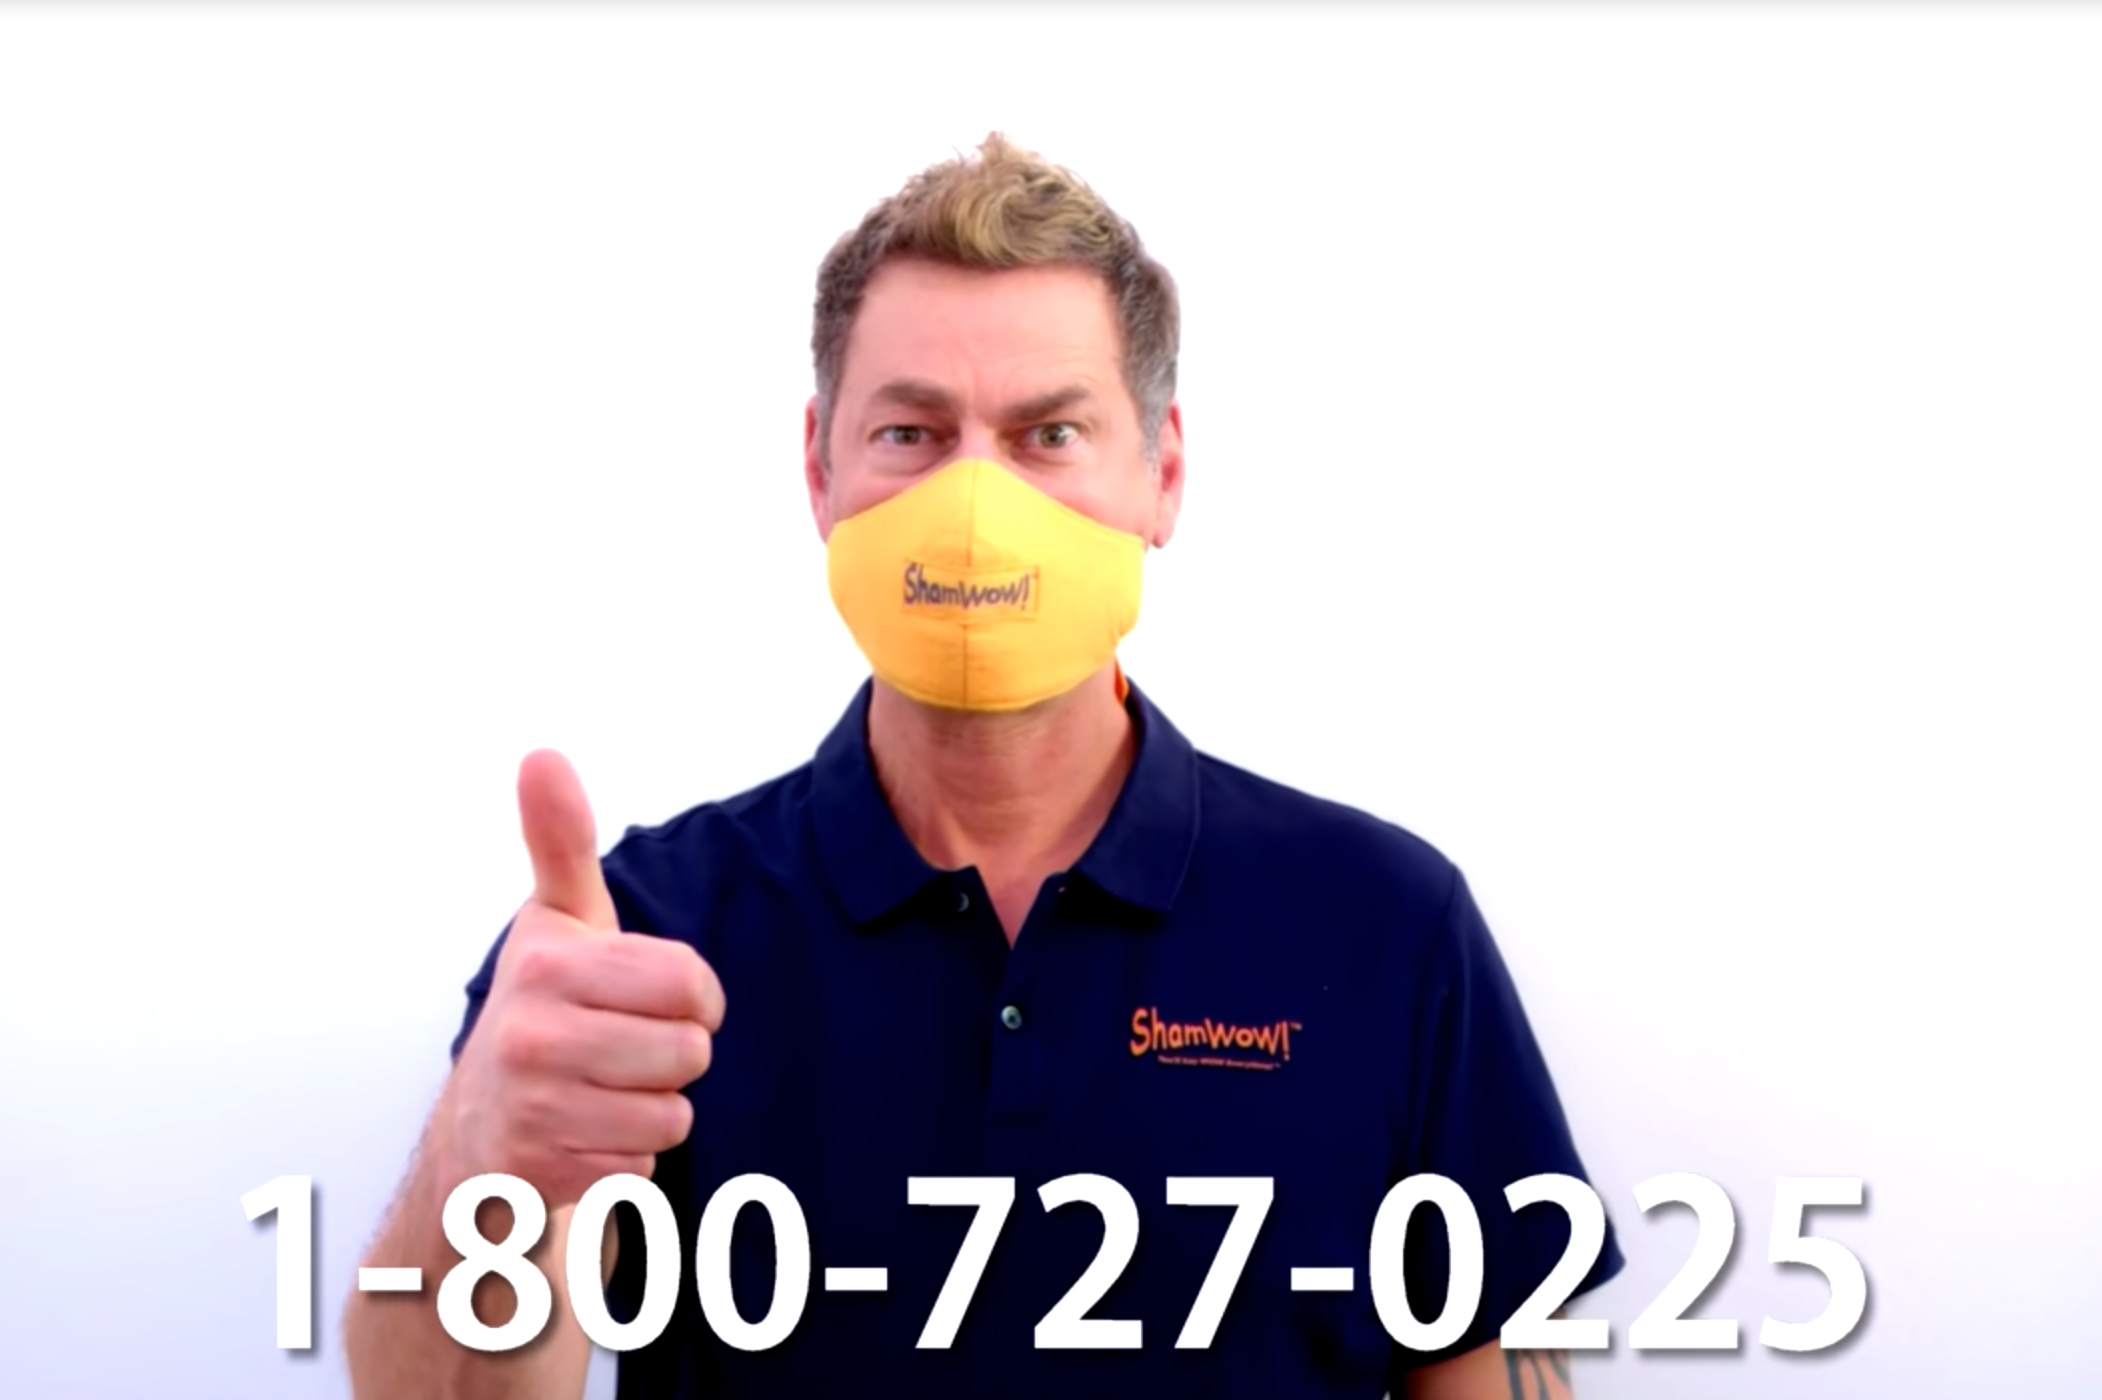 ShamWow gives away branded face masks in its dystopian infomercial